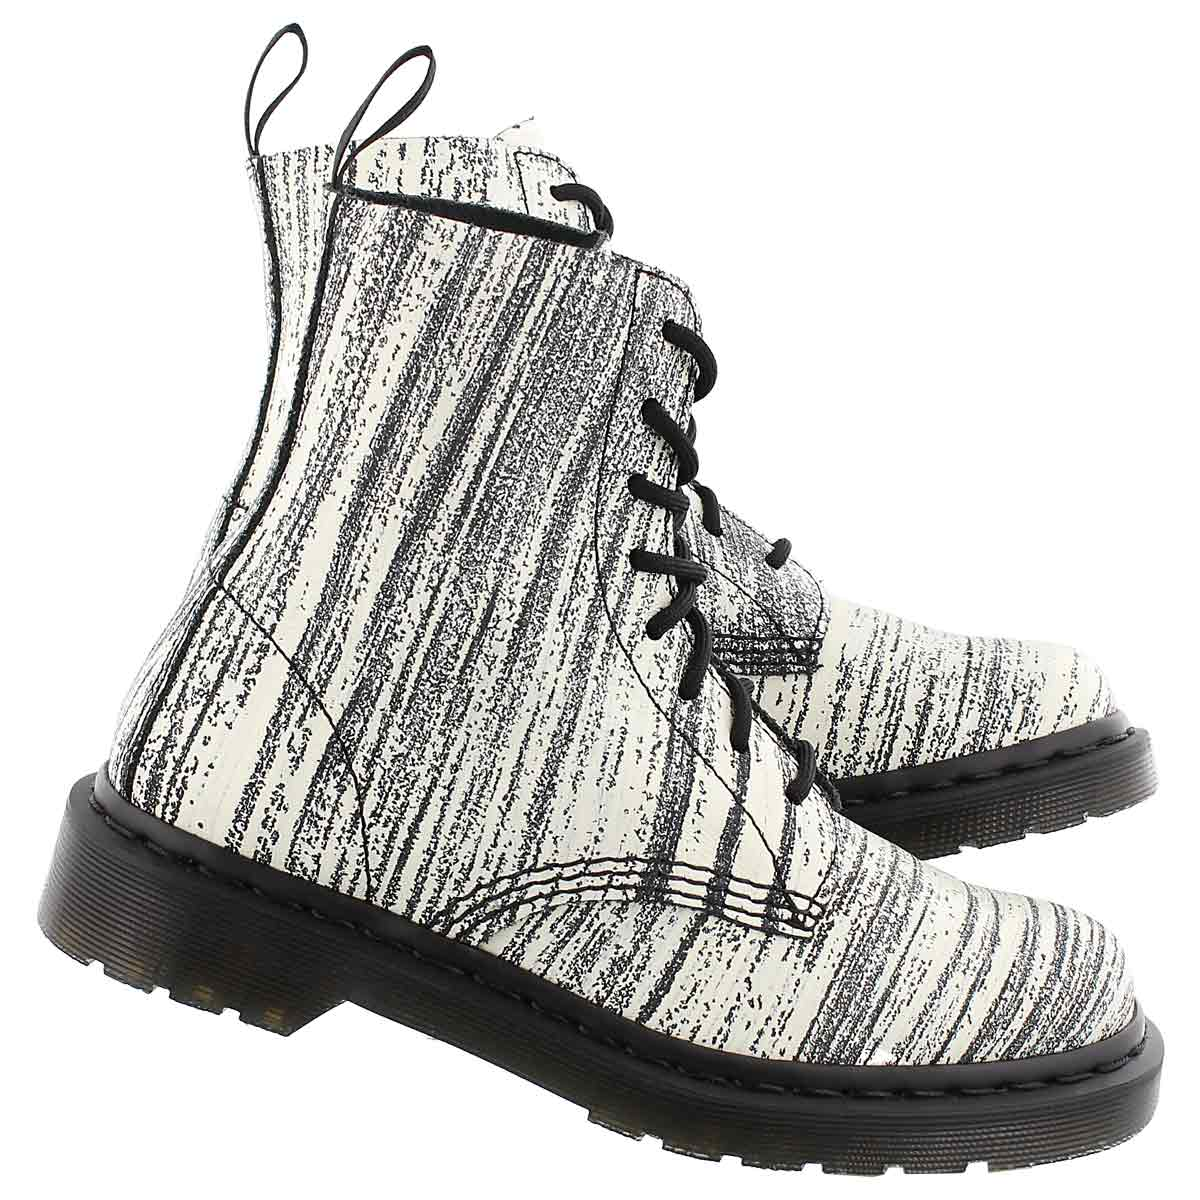 Lds Pascal 8-Eye wht/blk combat boot